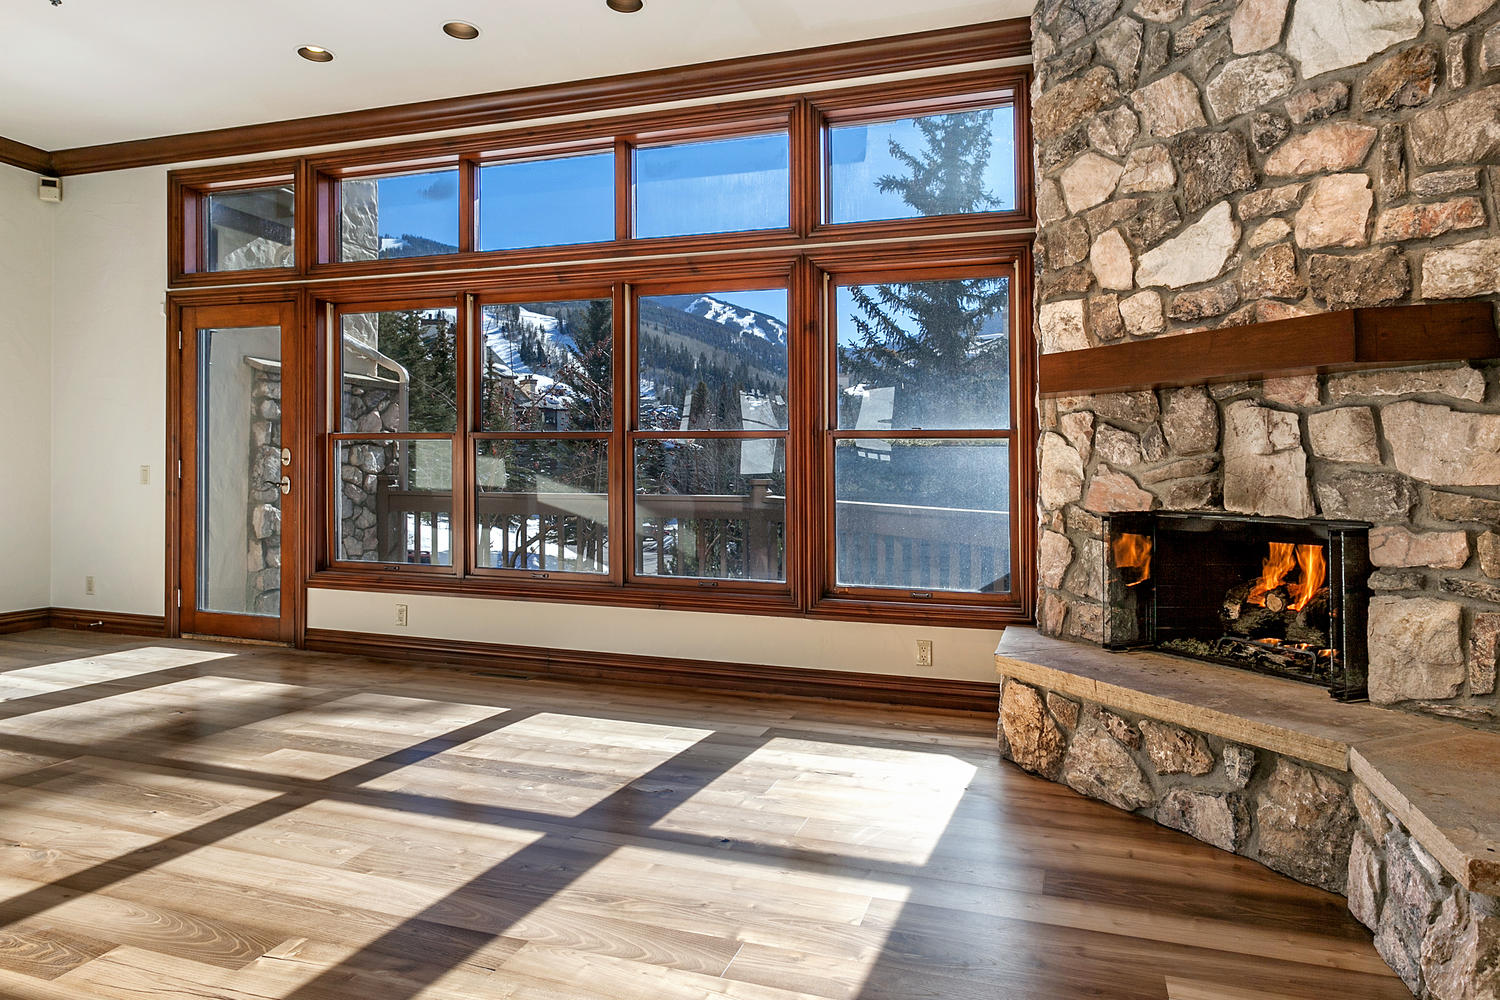 Townhouse for Sale at Ski-in Ski-out Mountain Modern 83 Offerson Road #7 Beaver Creek, Beaver Creek, Colorado, 81620 United States